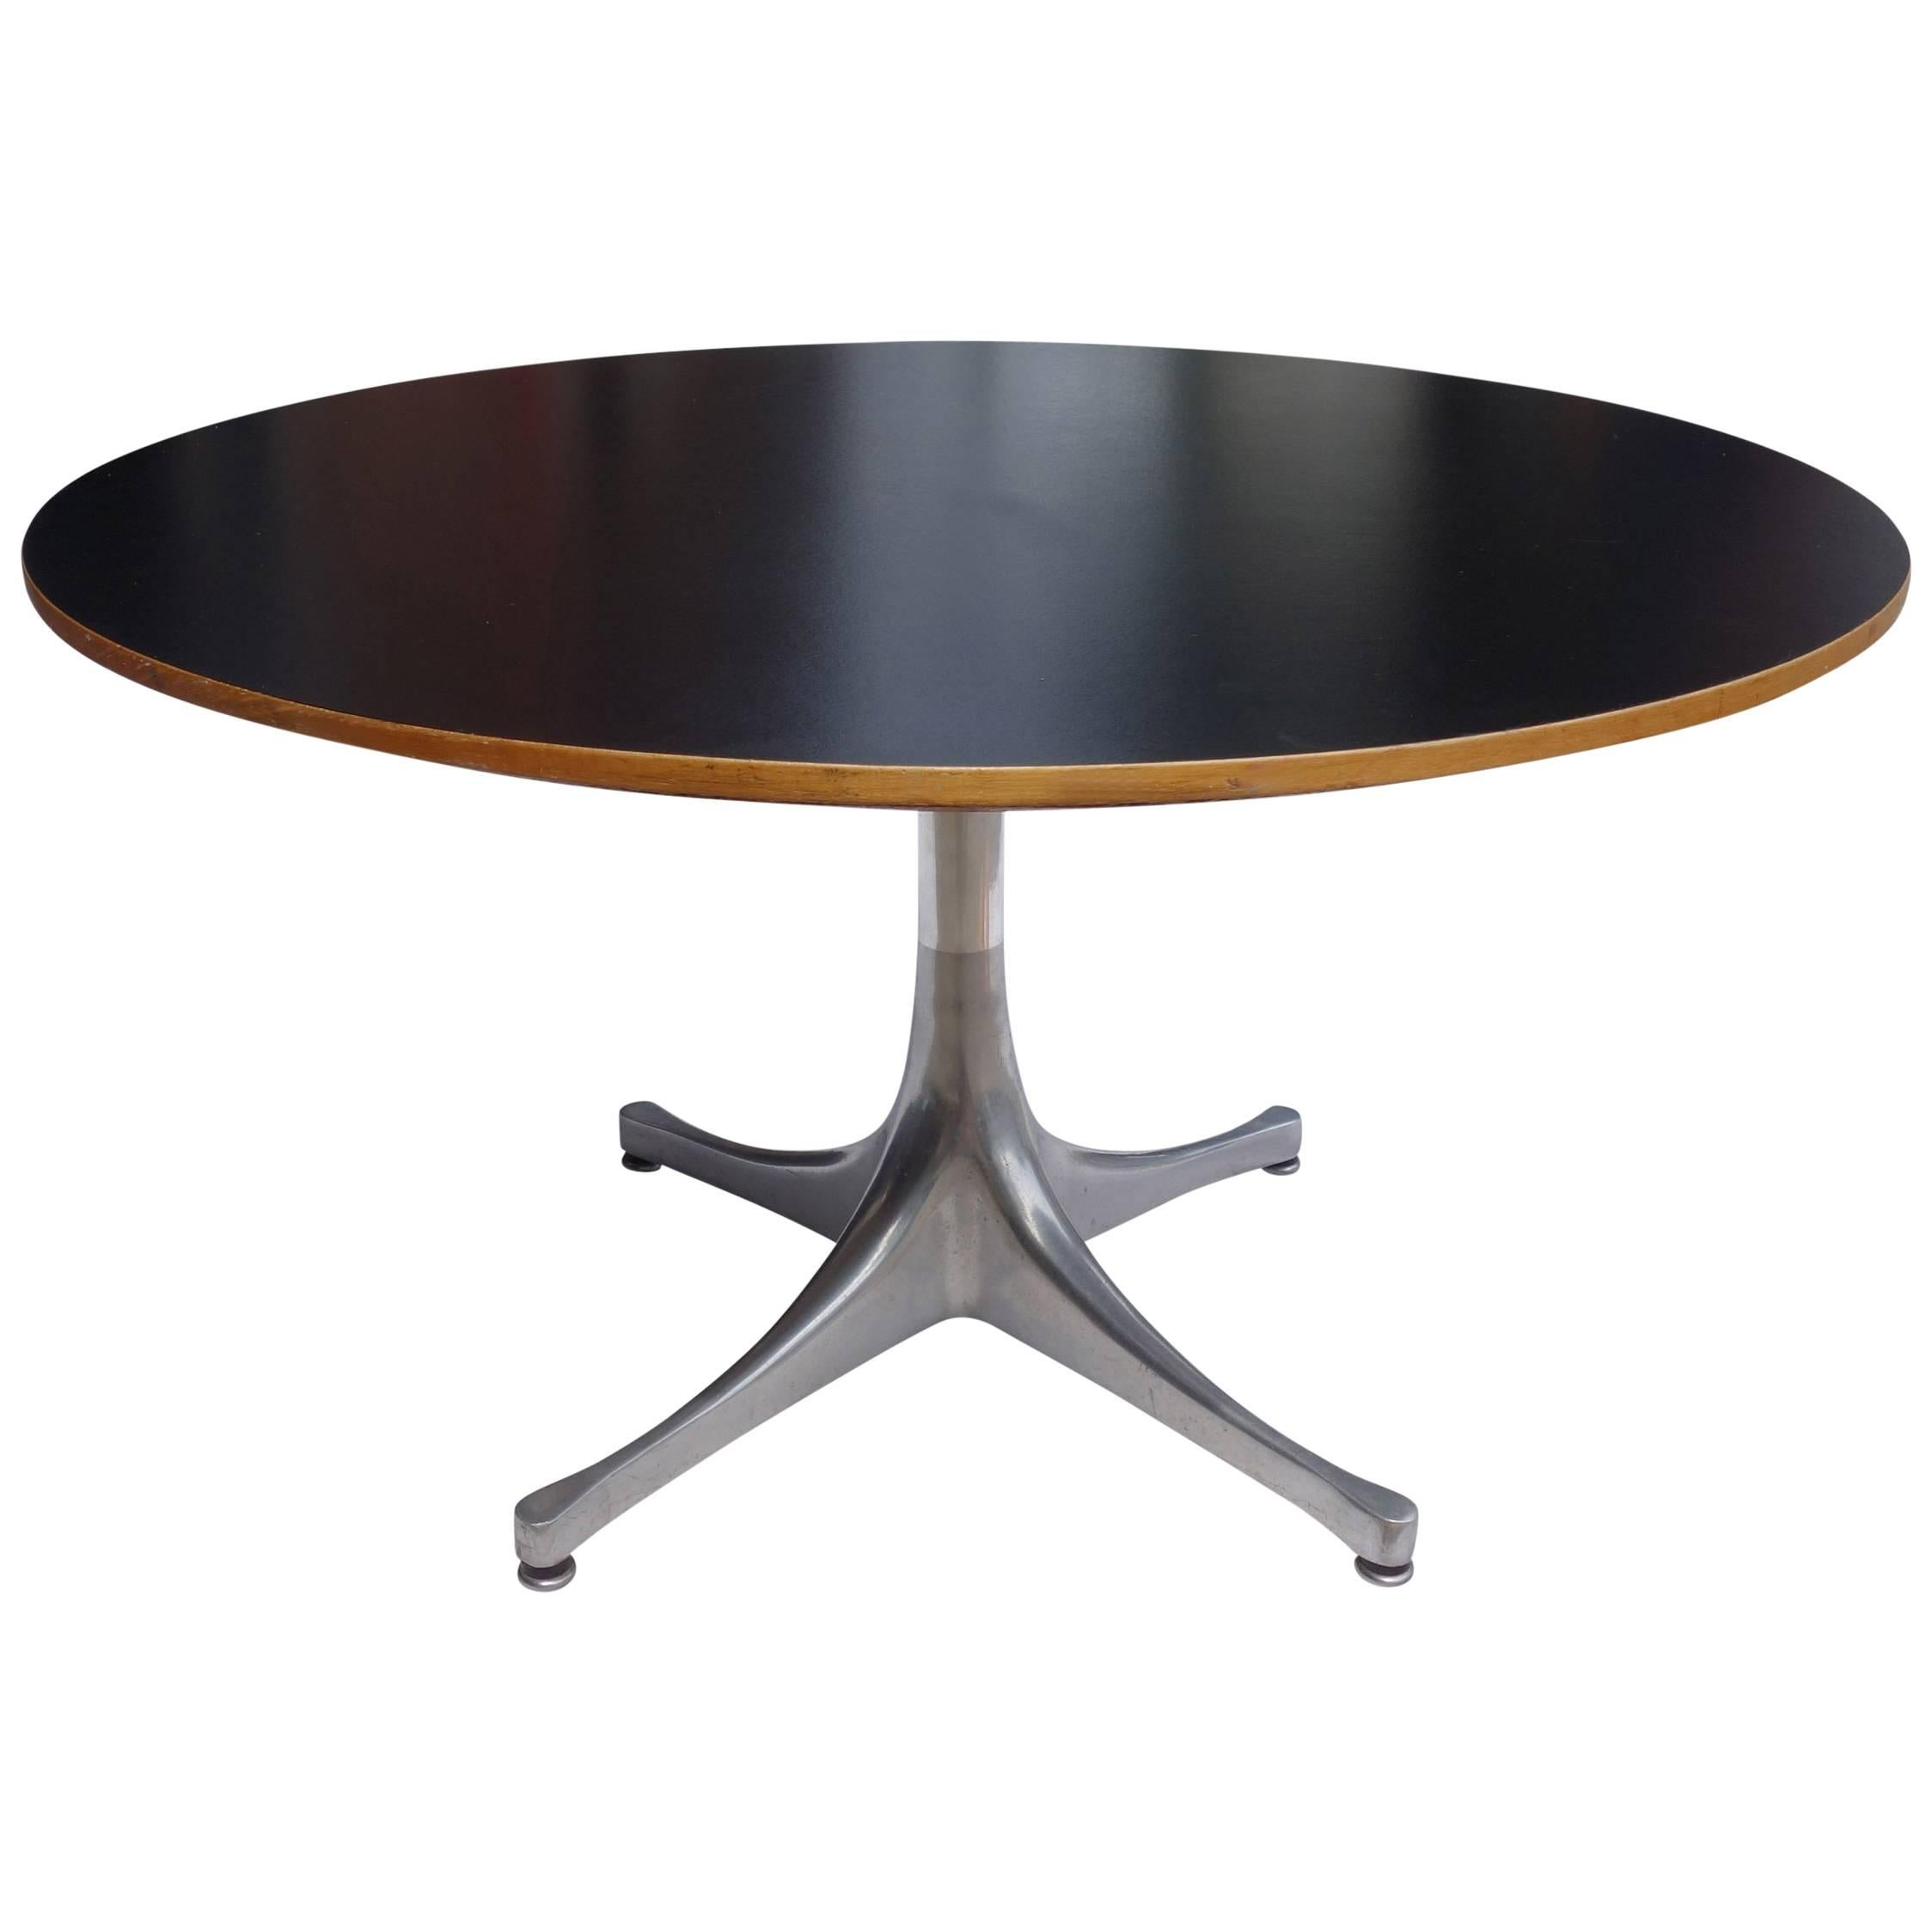 Midcentury George Nelson Swag Leg Table For Herman Miller